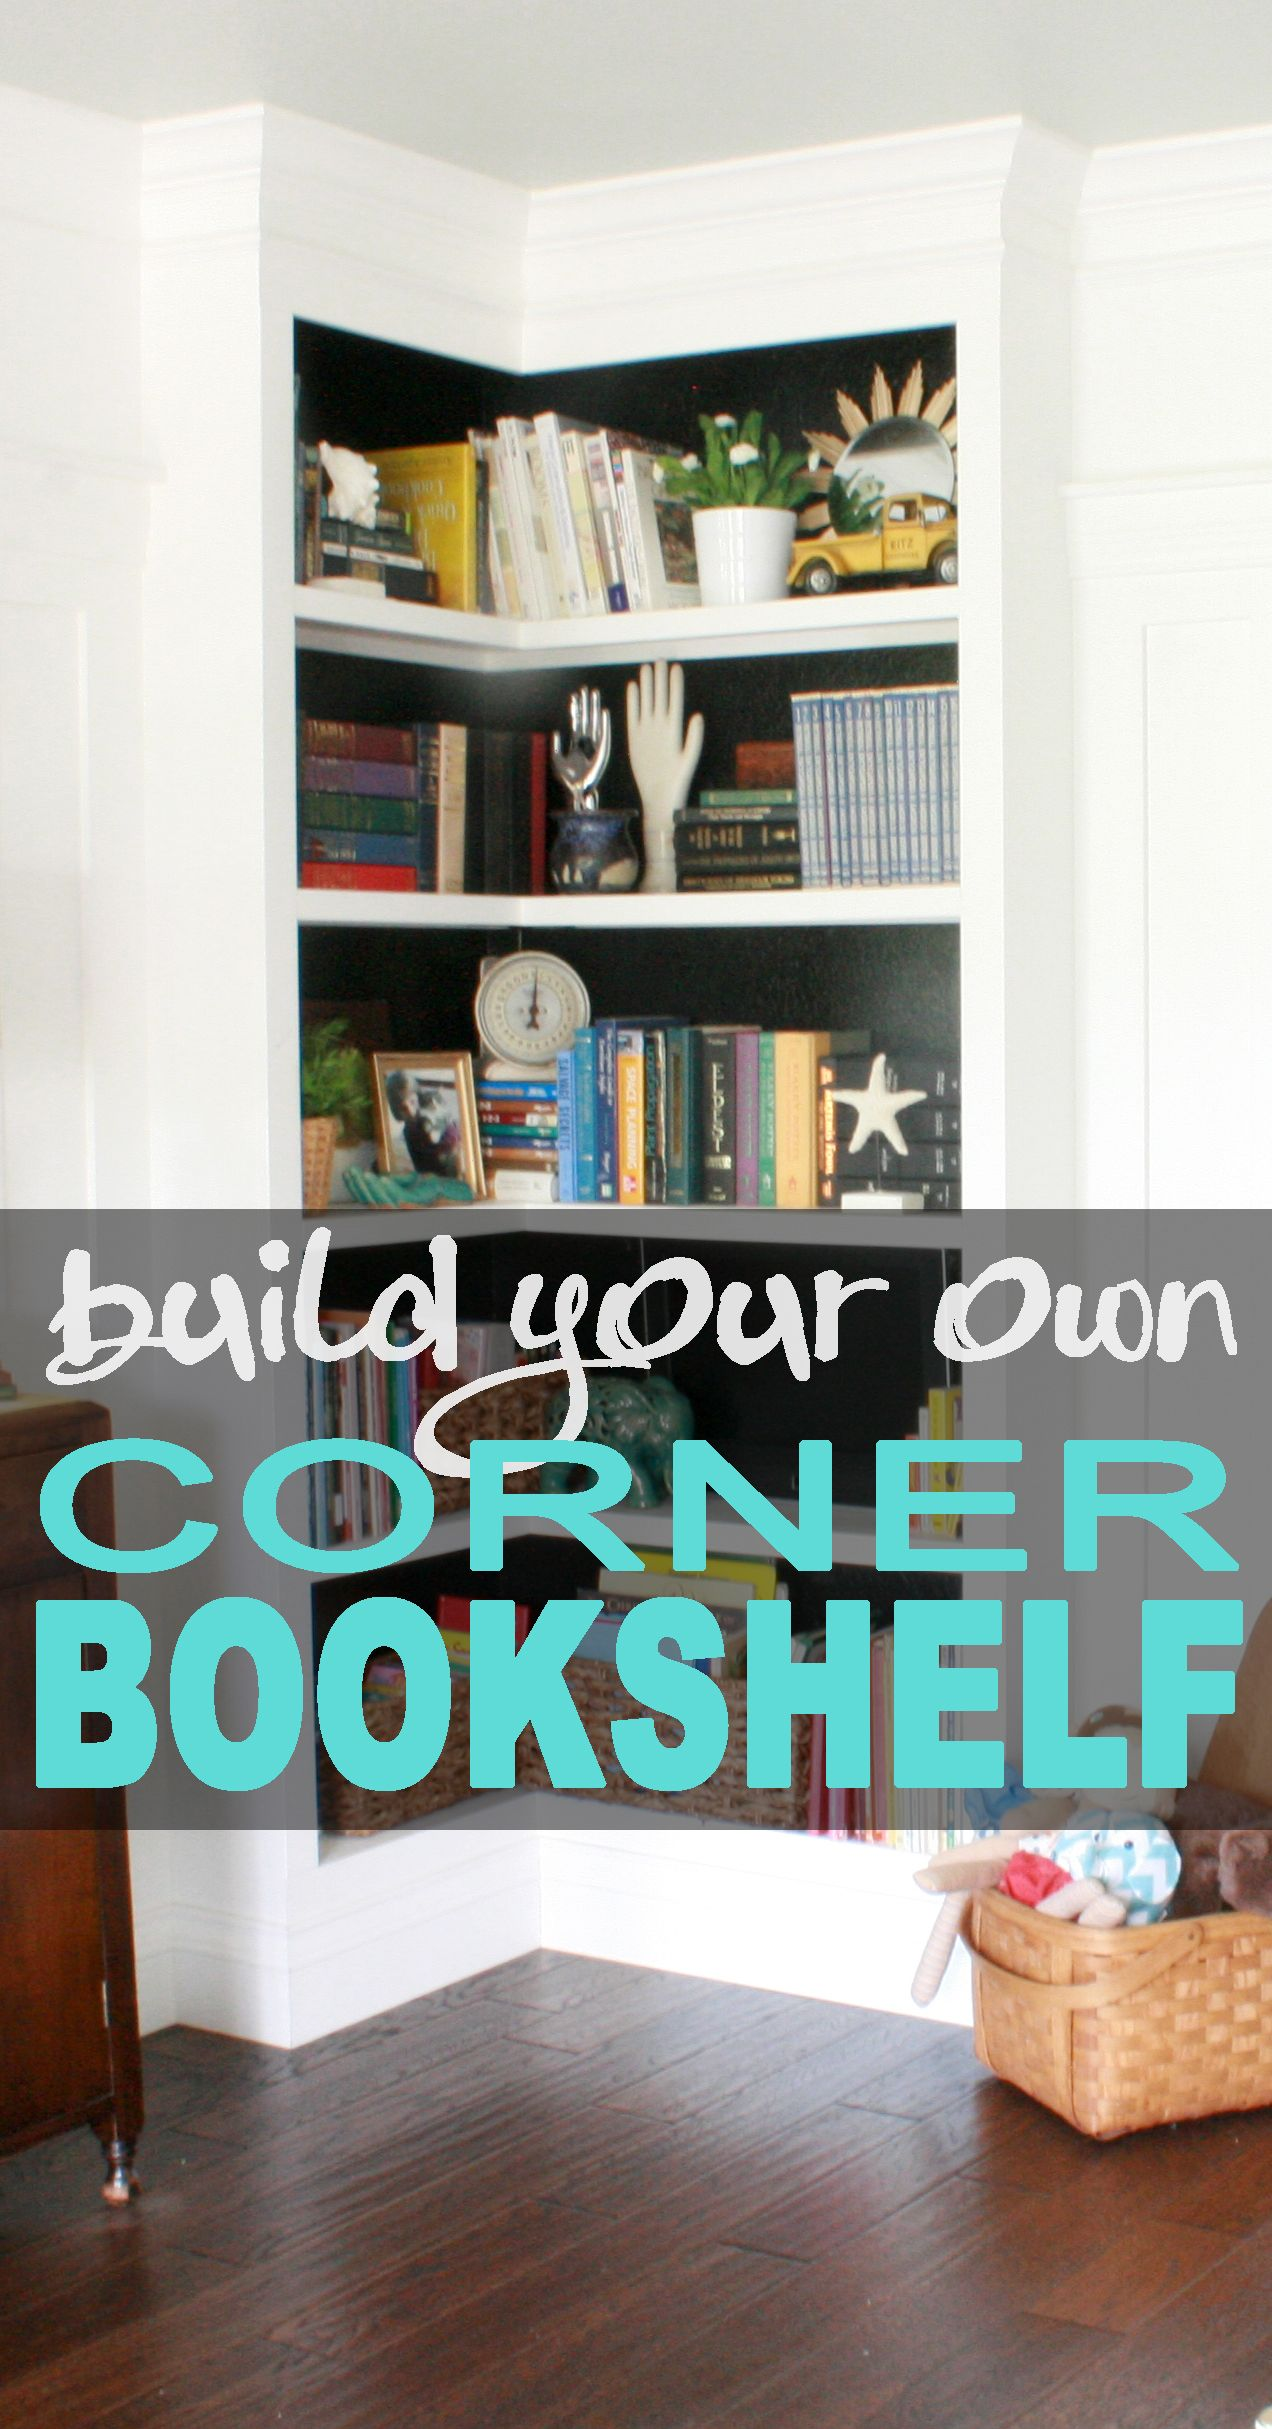 plans nice create bookshelf bookcase amazing own bookcases your x of photo build